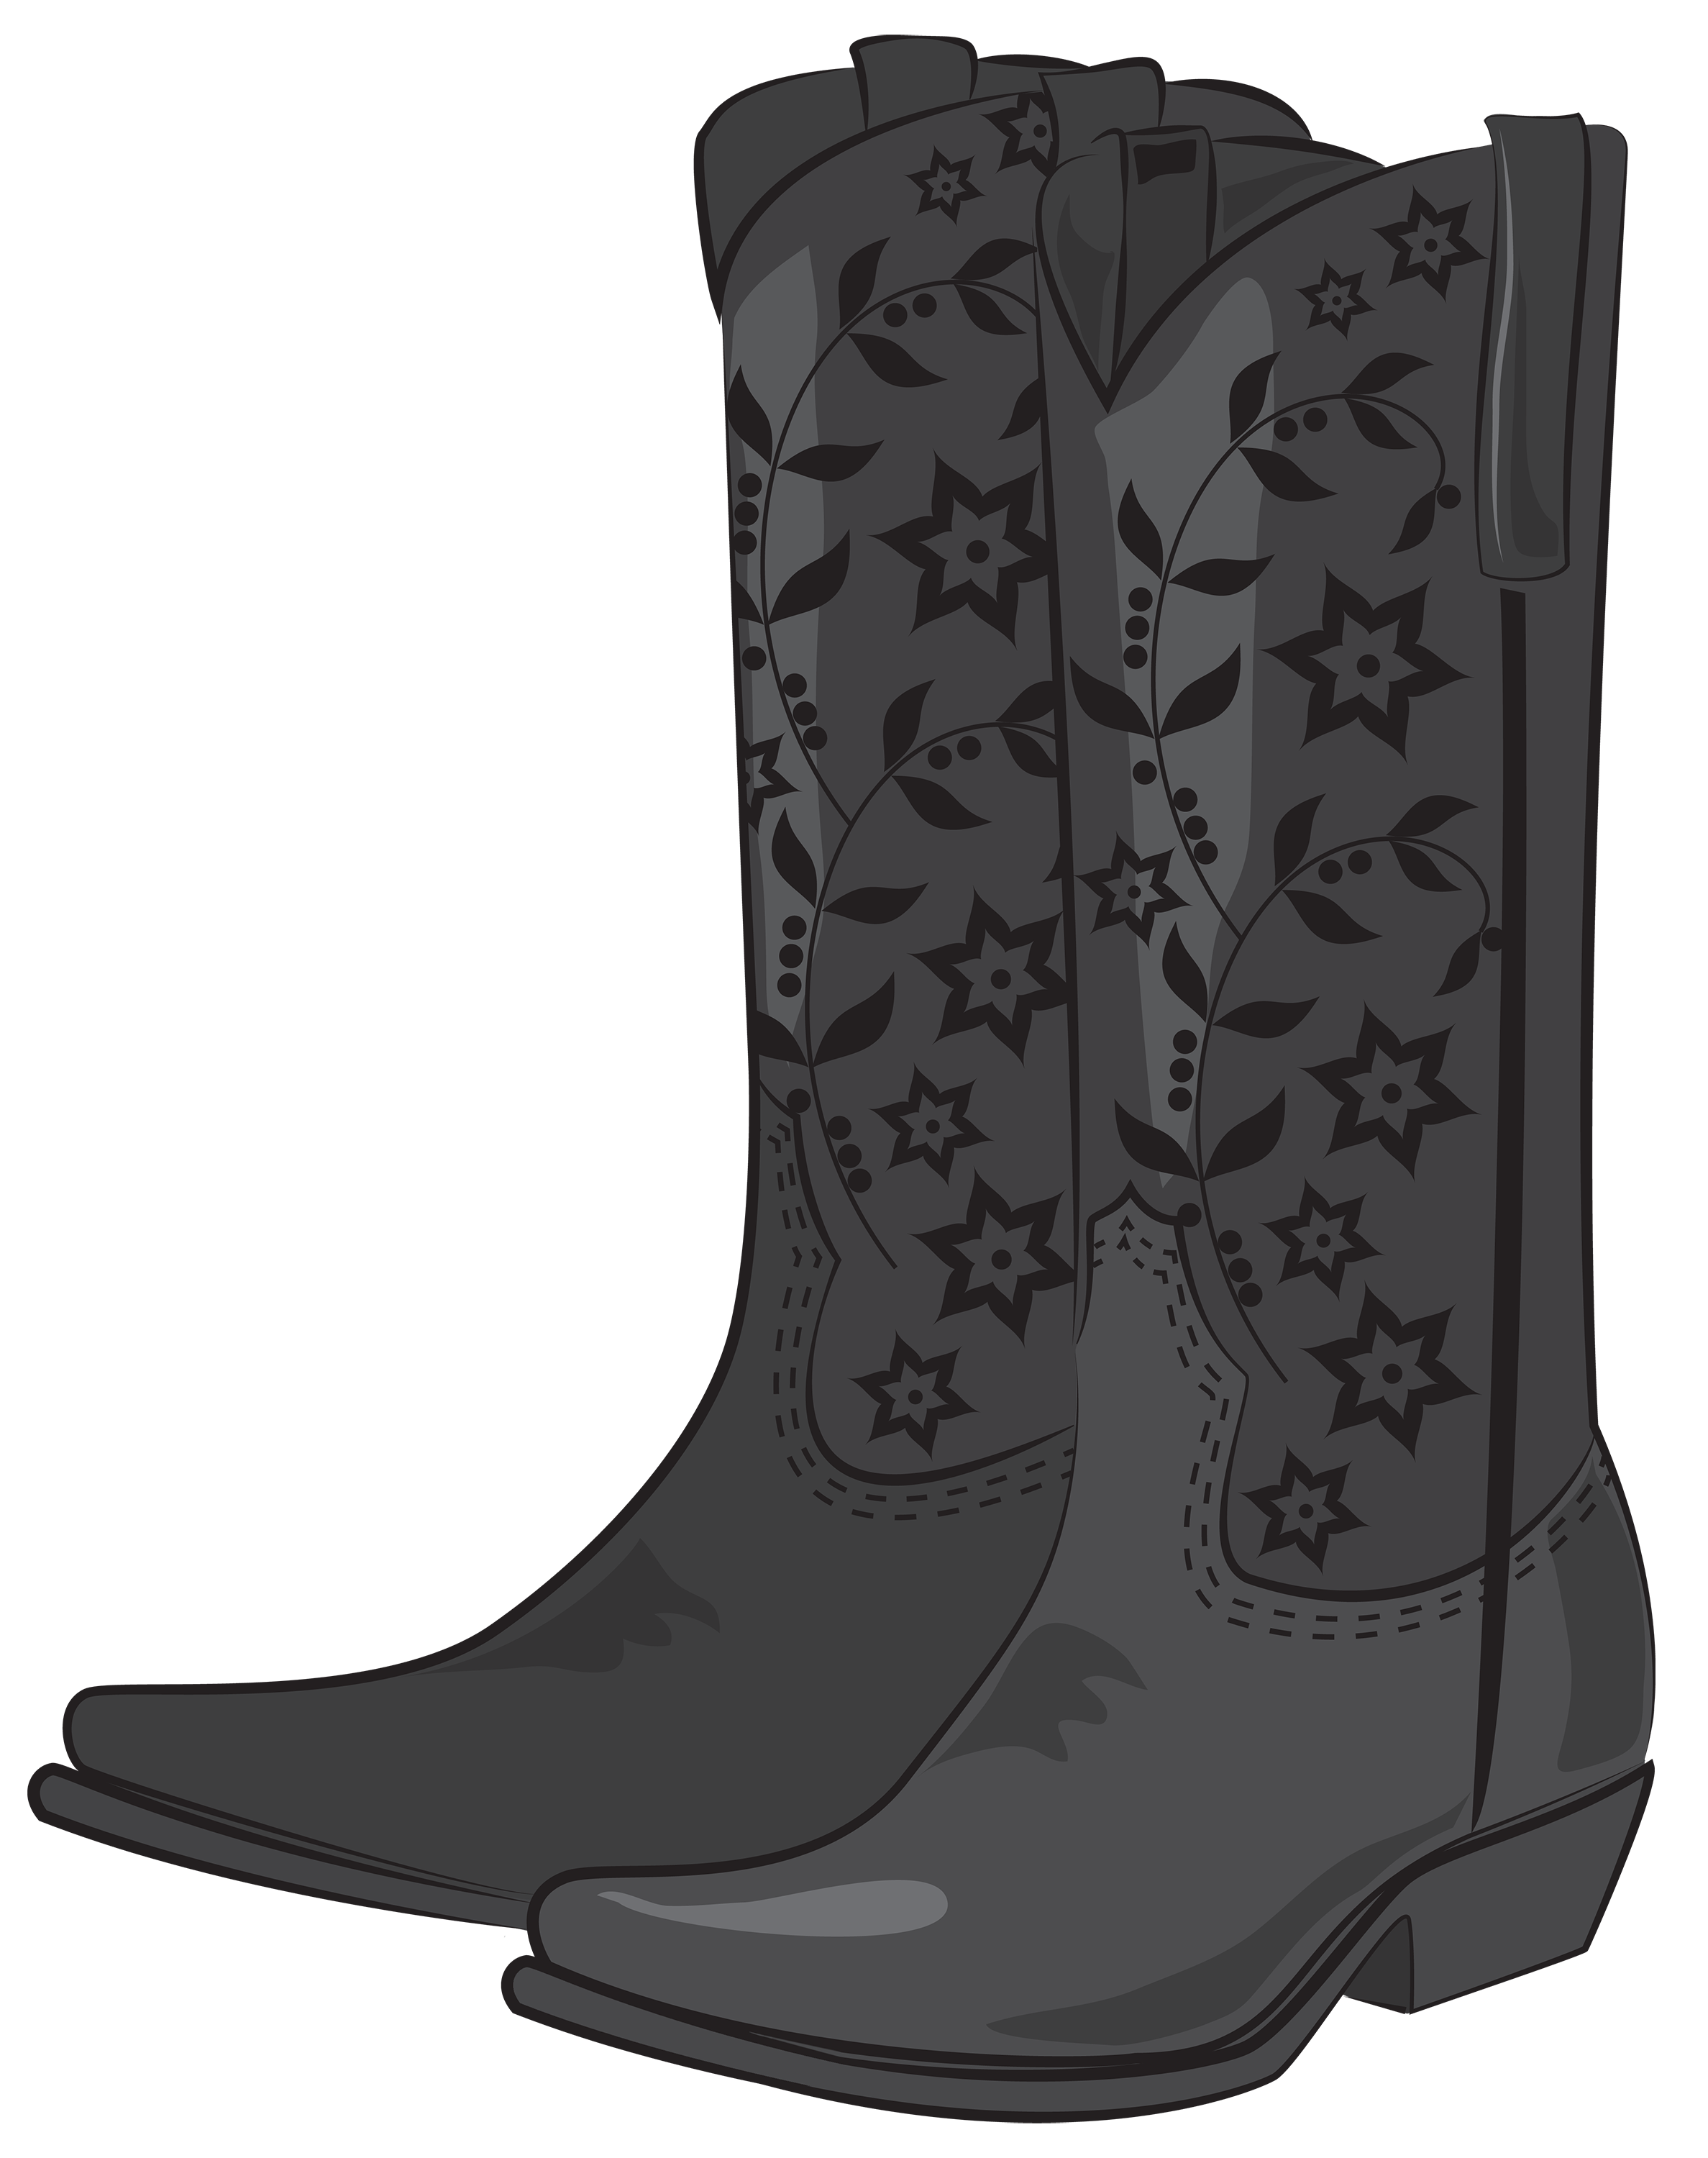 Black cowboy png best. Boots clipart brown boot